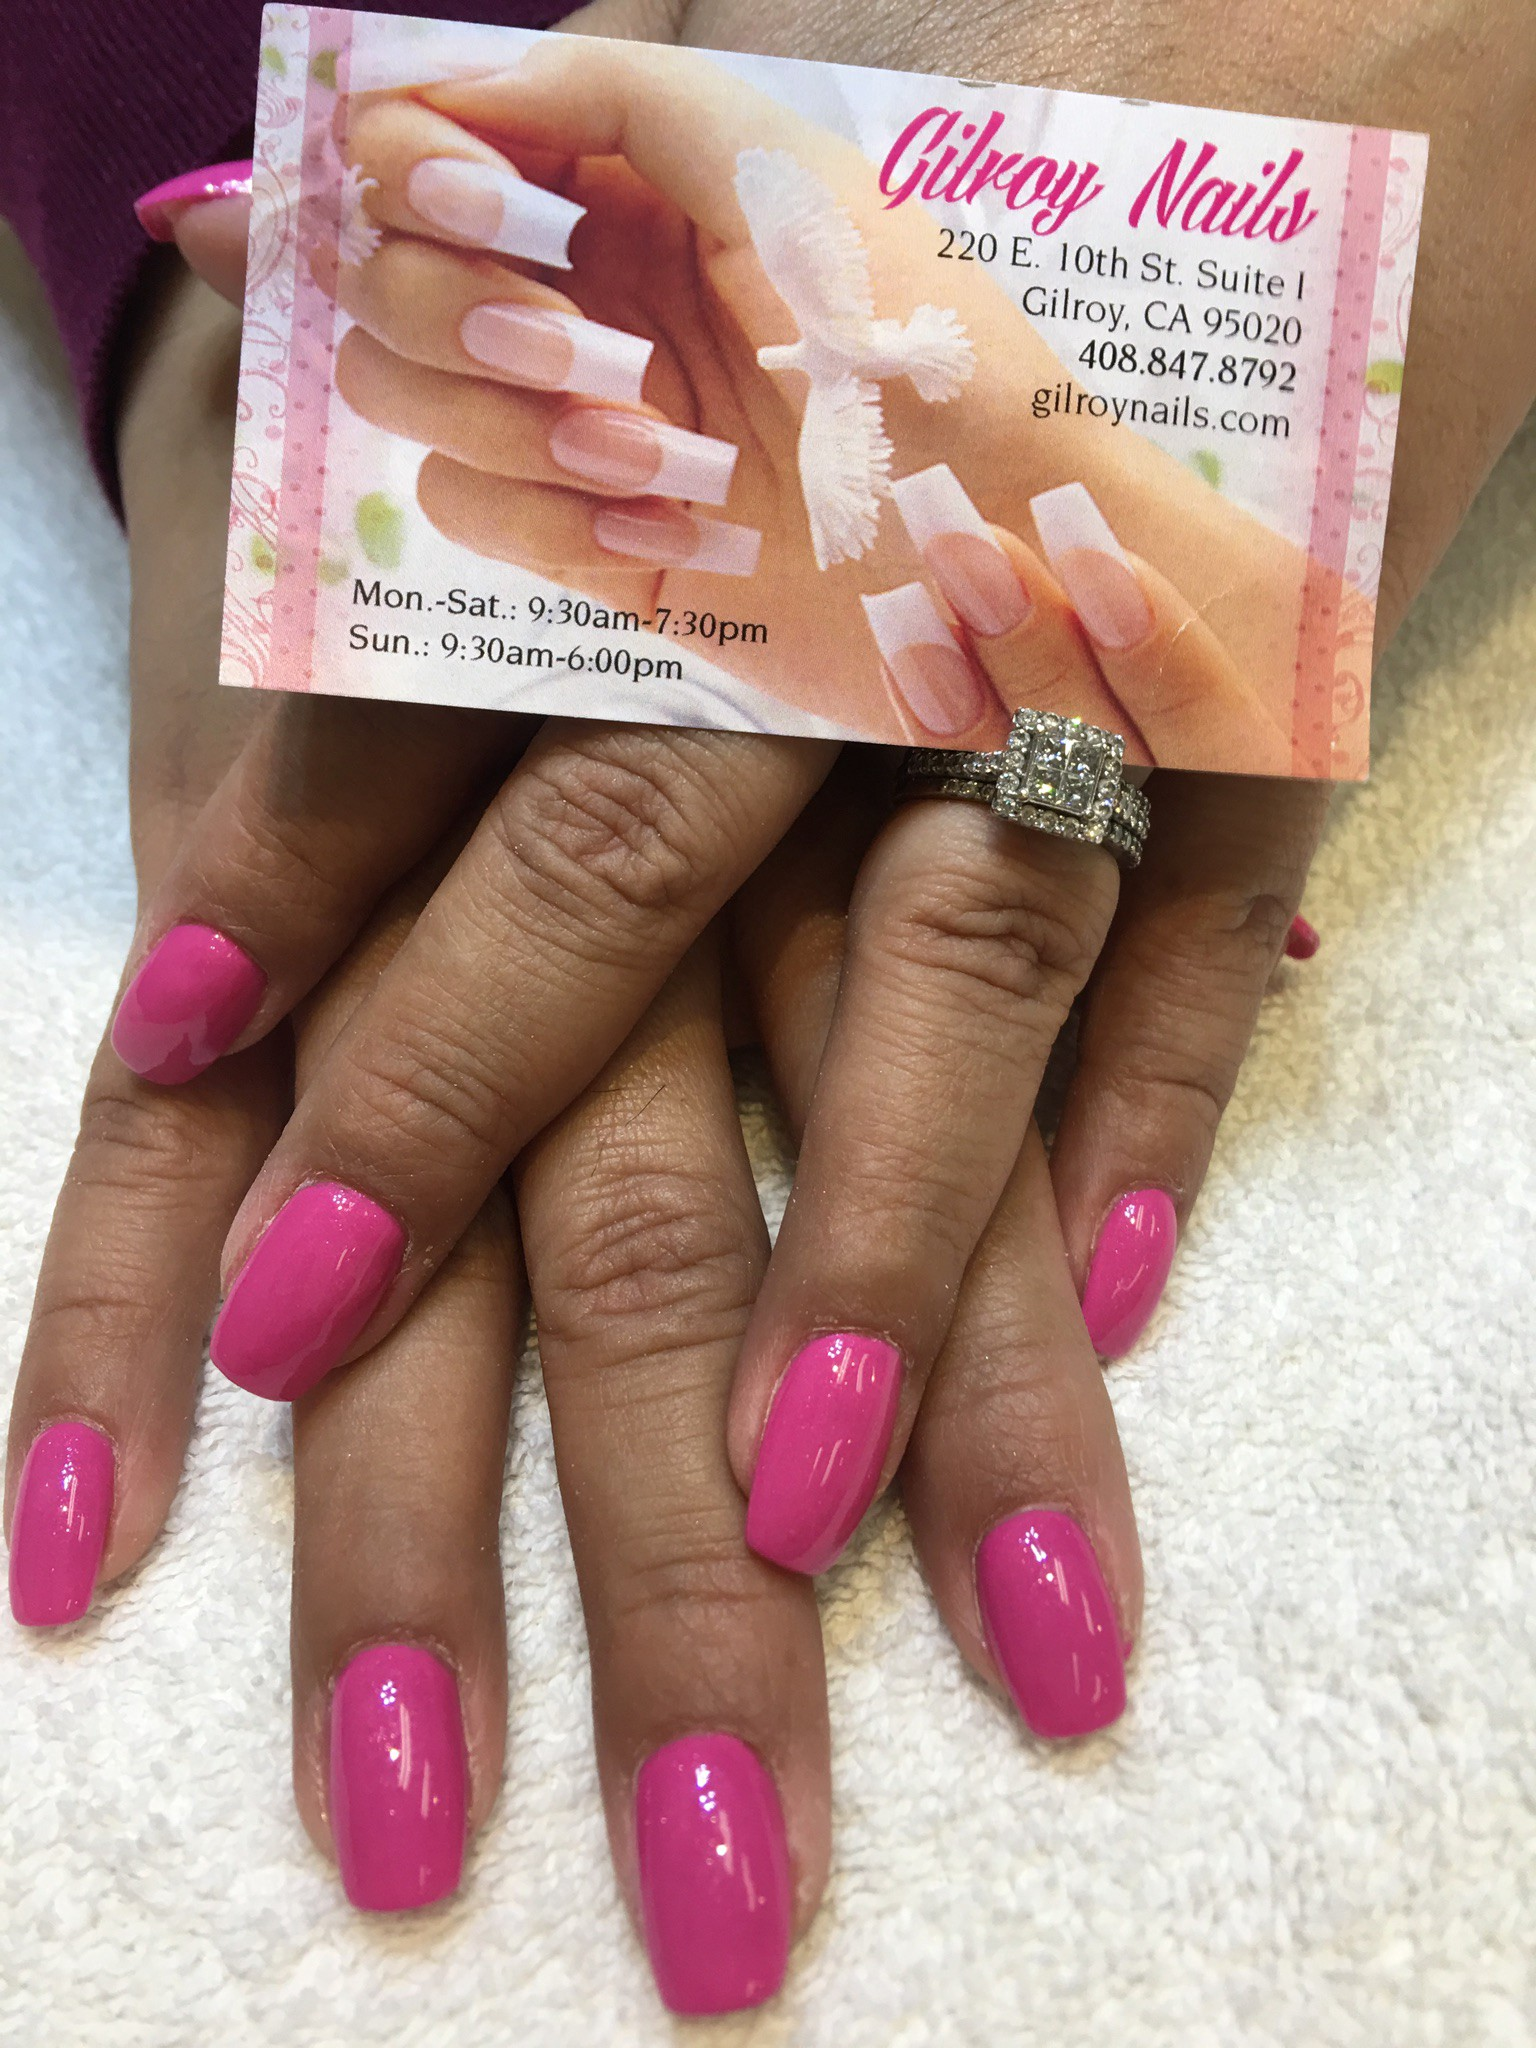 What Nail Salons Are Open Today Near Me